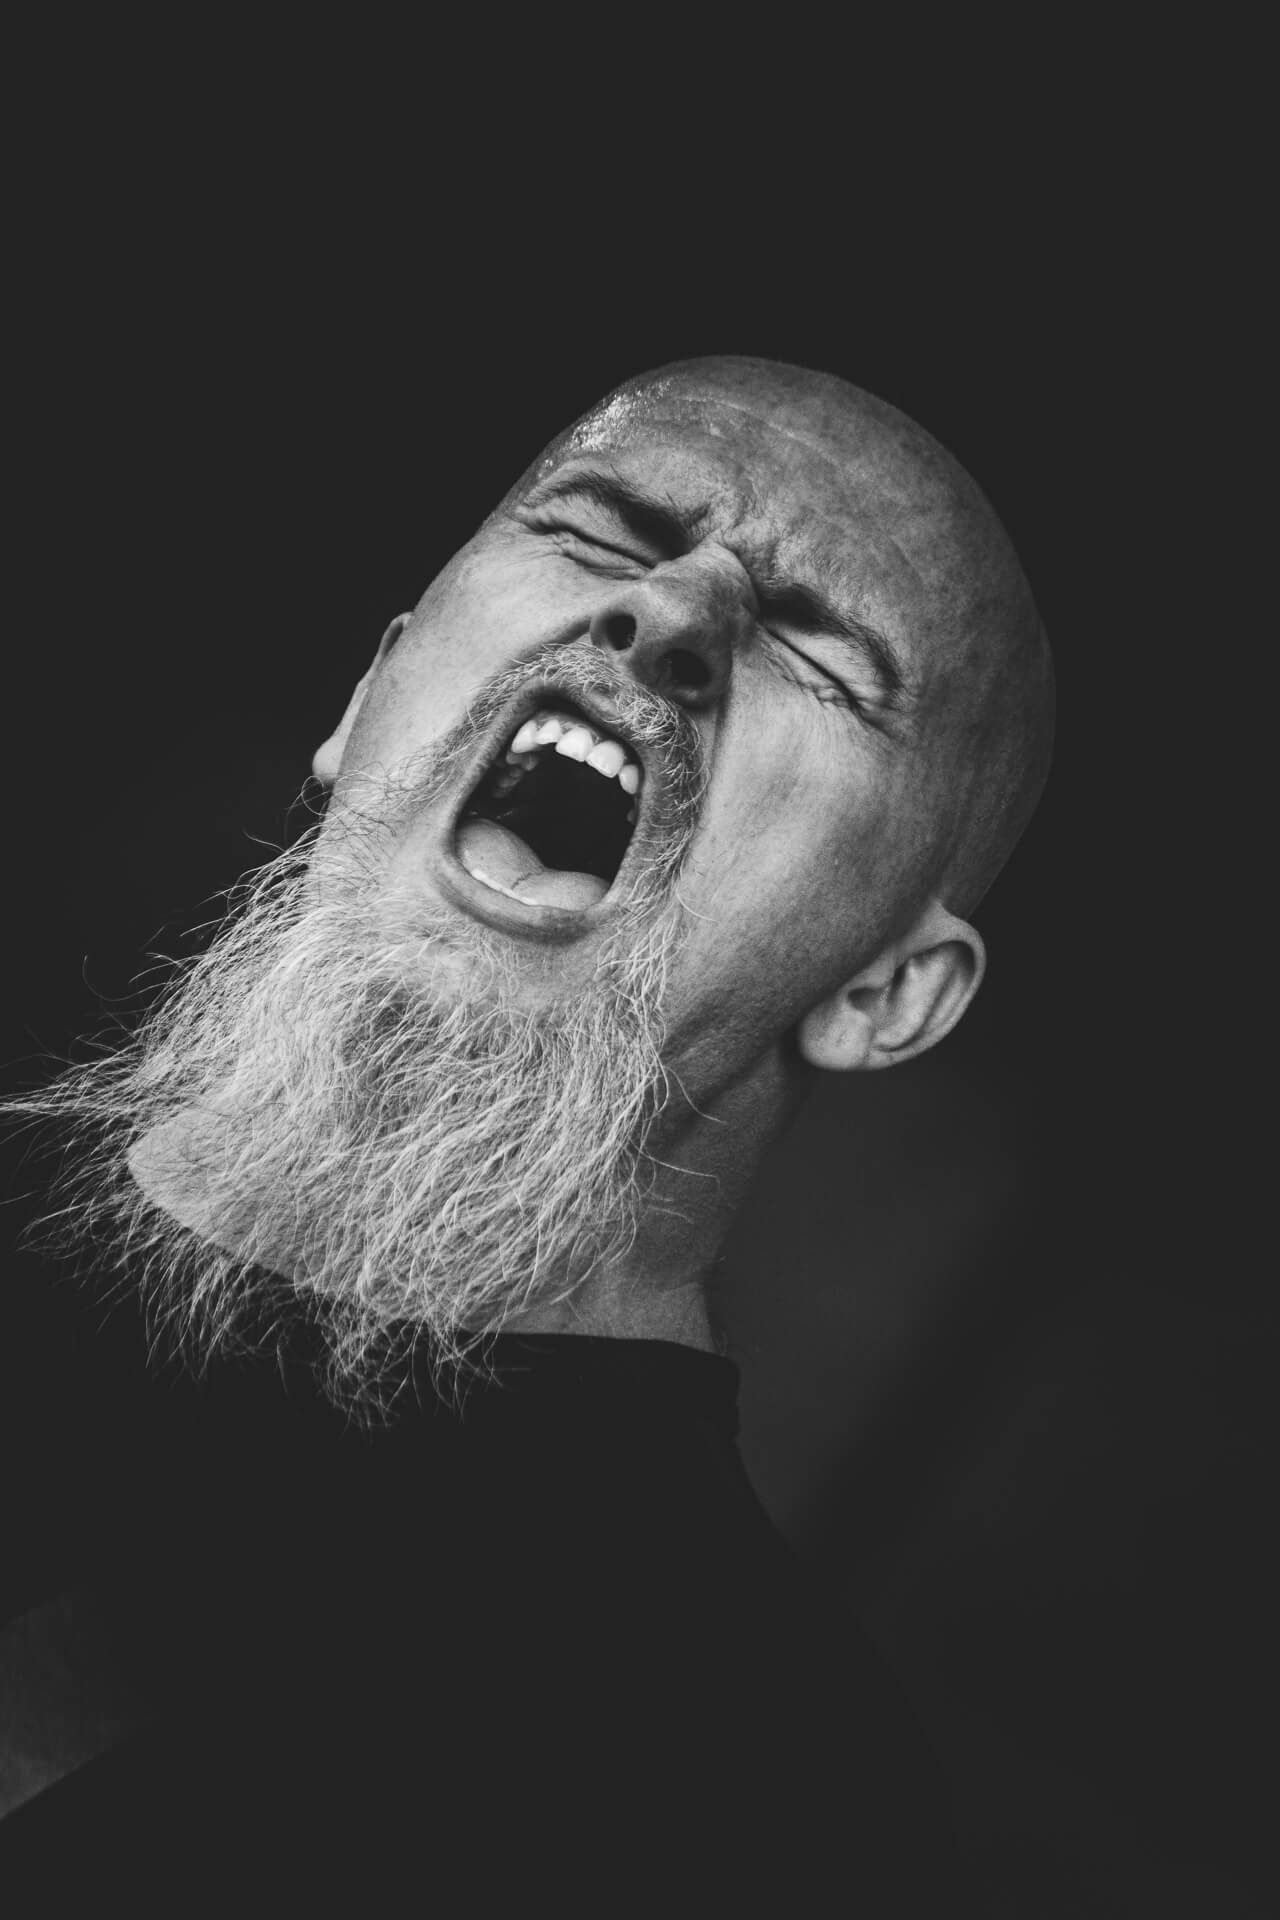 A B&W head shot of Glyn Shepard eyes tightly closed, mouth wide open, playing with Sabotage at The Drunken Monkey Rock Festival